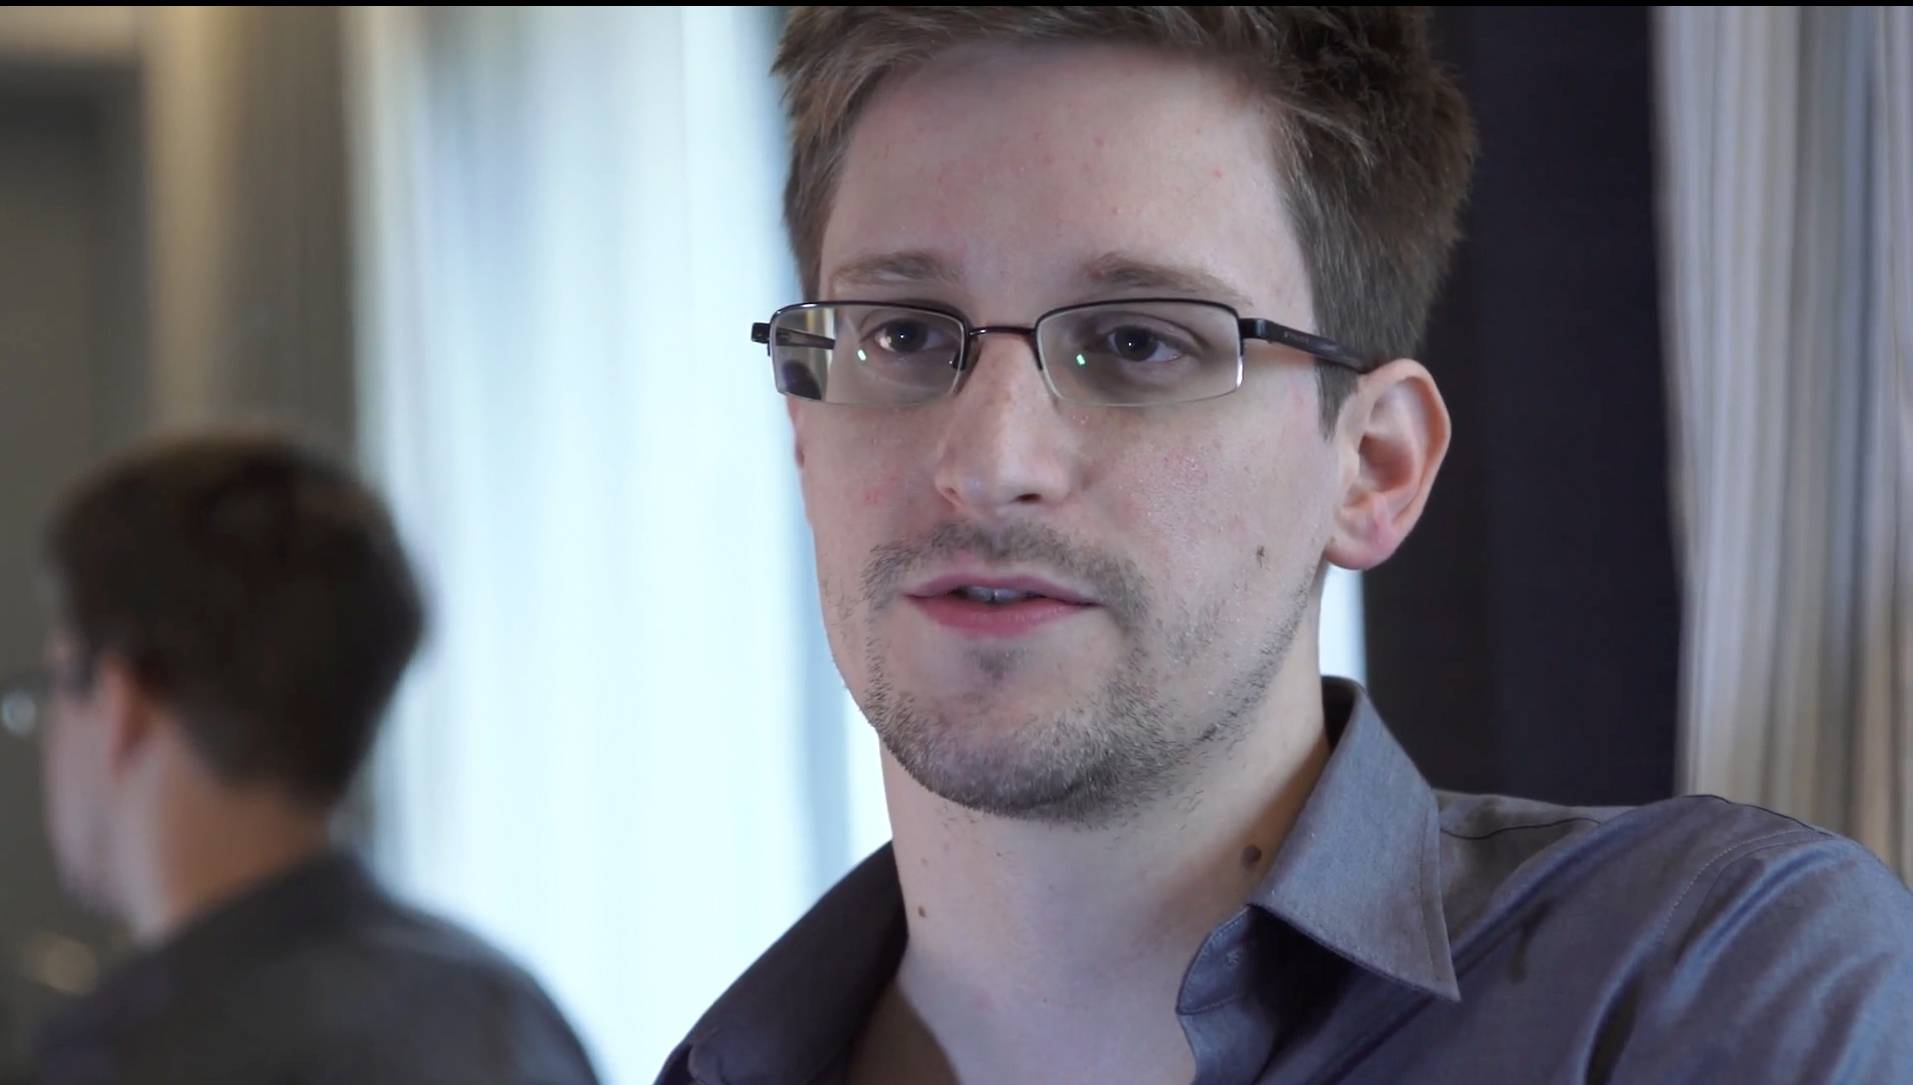 This photo provided by The Guardian Newspaper in London shows Edward Snowden, who worked as a contract employee at the National Security Agency, June 9, 2013,